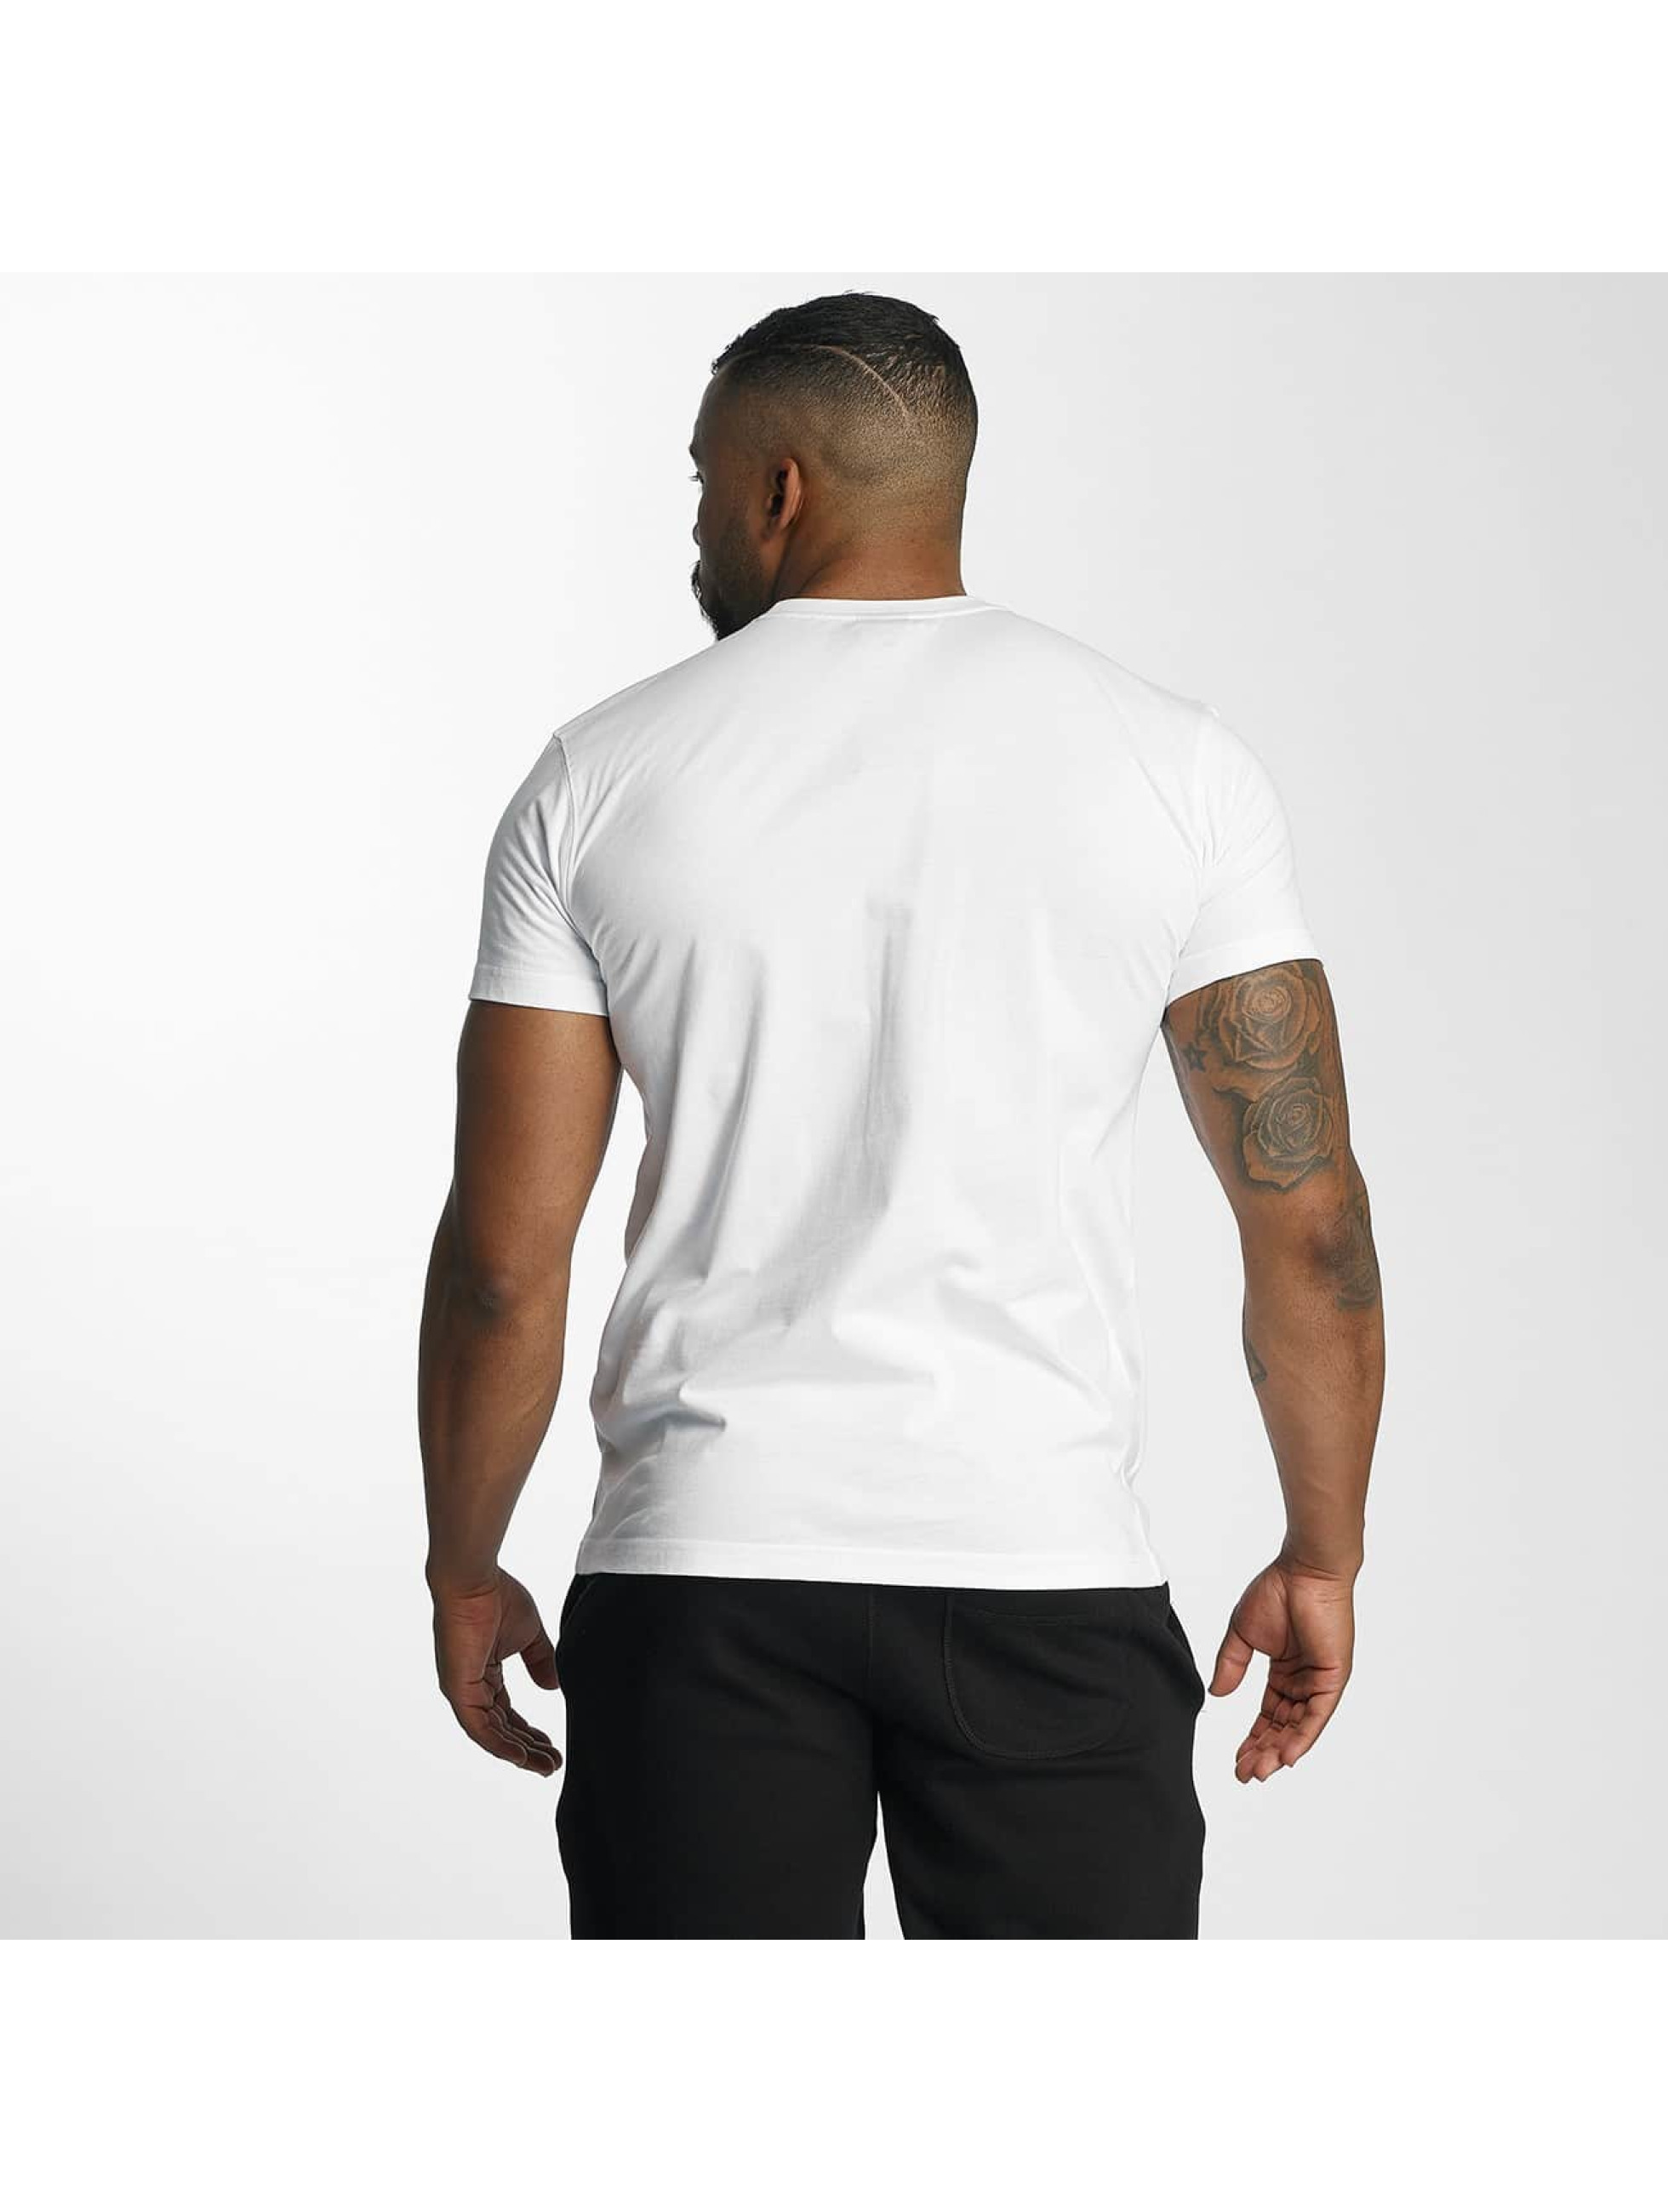 Pusher Apparel T-shirt White Carrera bianco